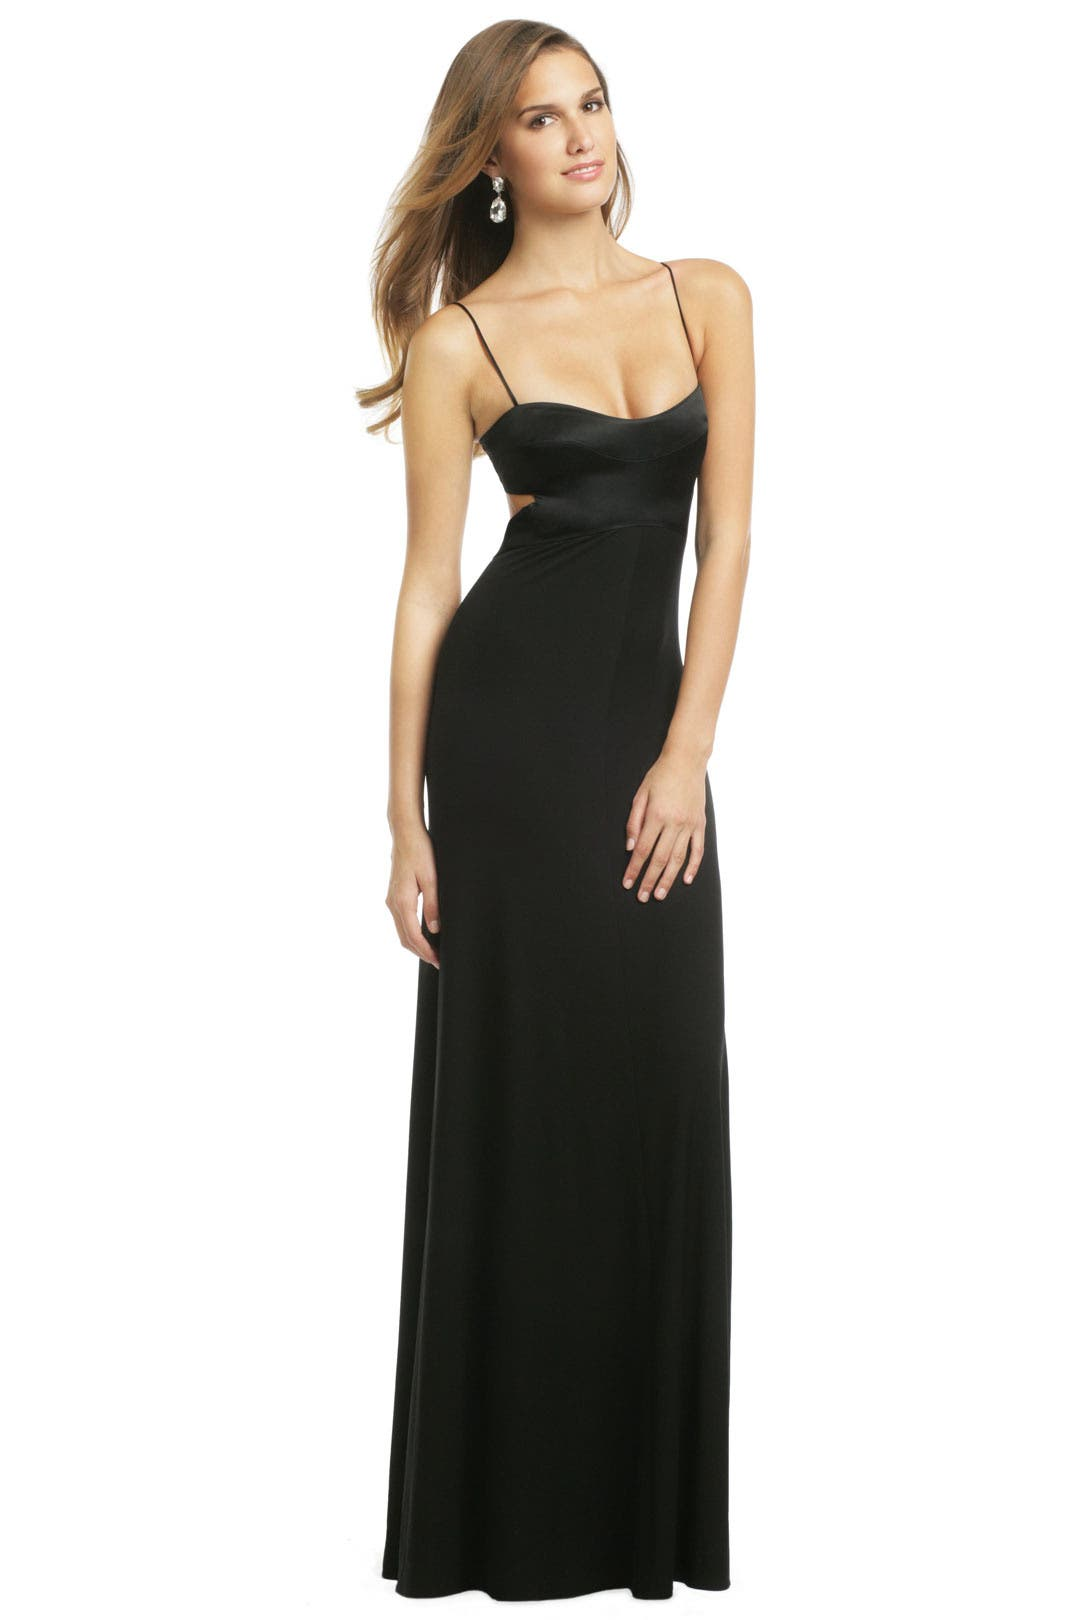 Getting Into Mischief Gown by Narciso Rodriguez